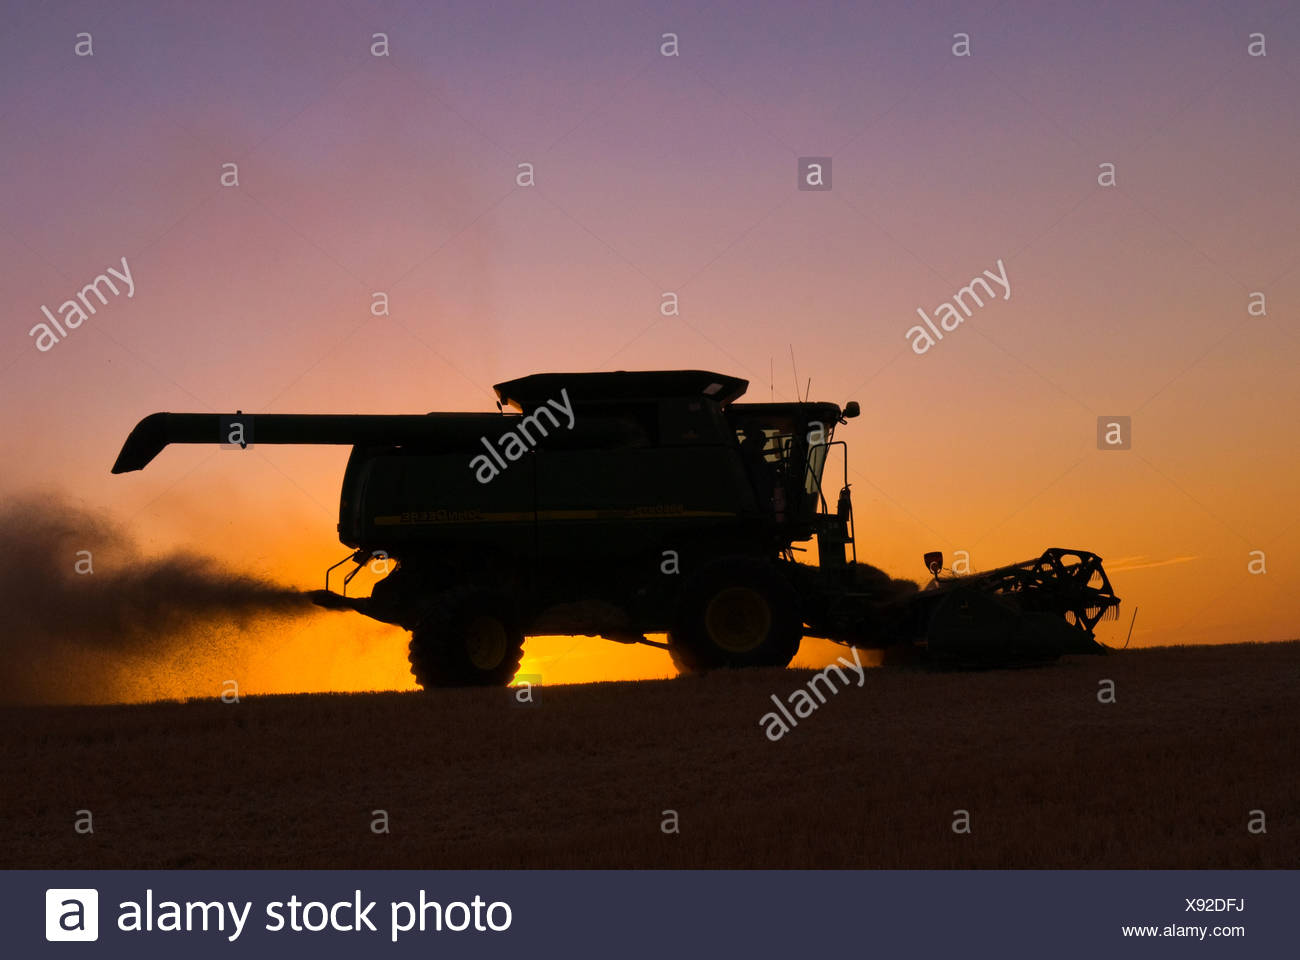 Agriculture - A John Deere combine, silhouetted by the sunset, harvests barley / Palouse Region, near Pullman, Washington, USA. - Stock Image